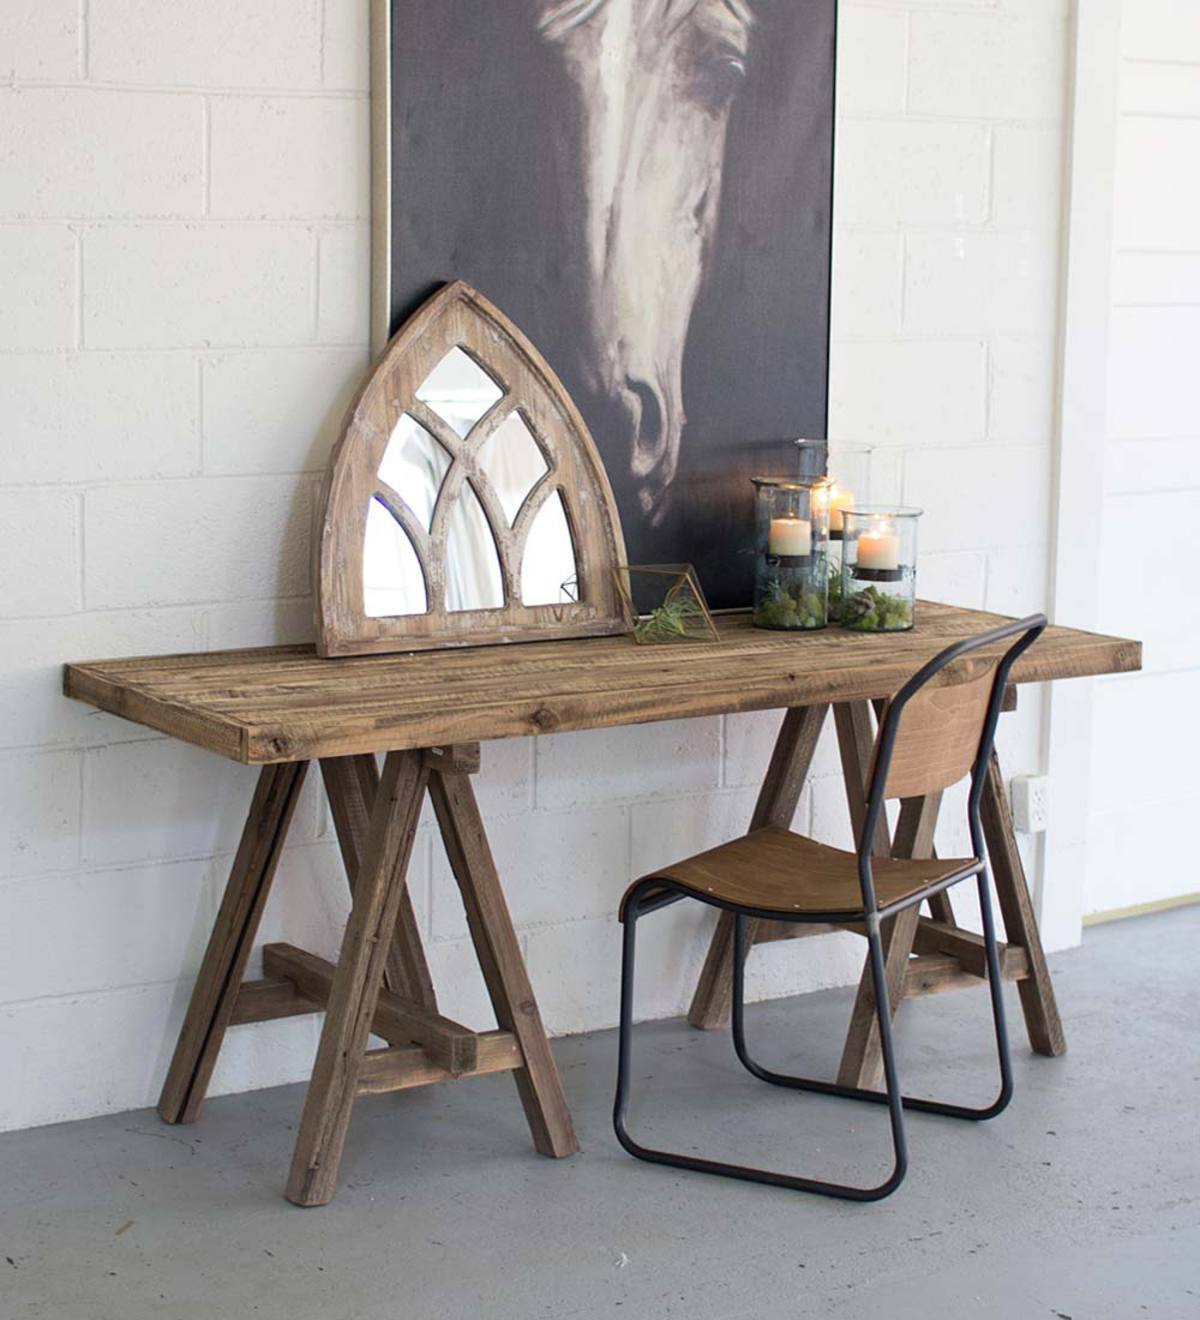 Wooden Console Table with Saw Horse Base